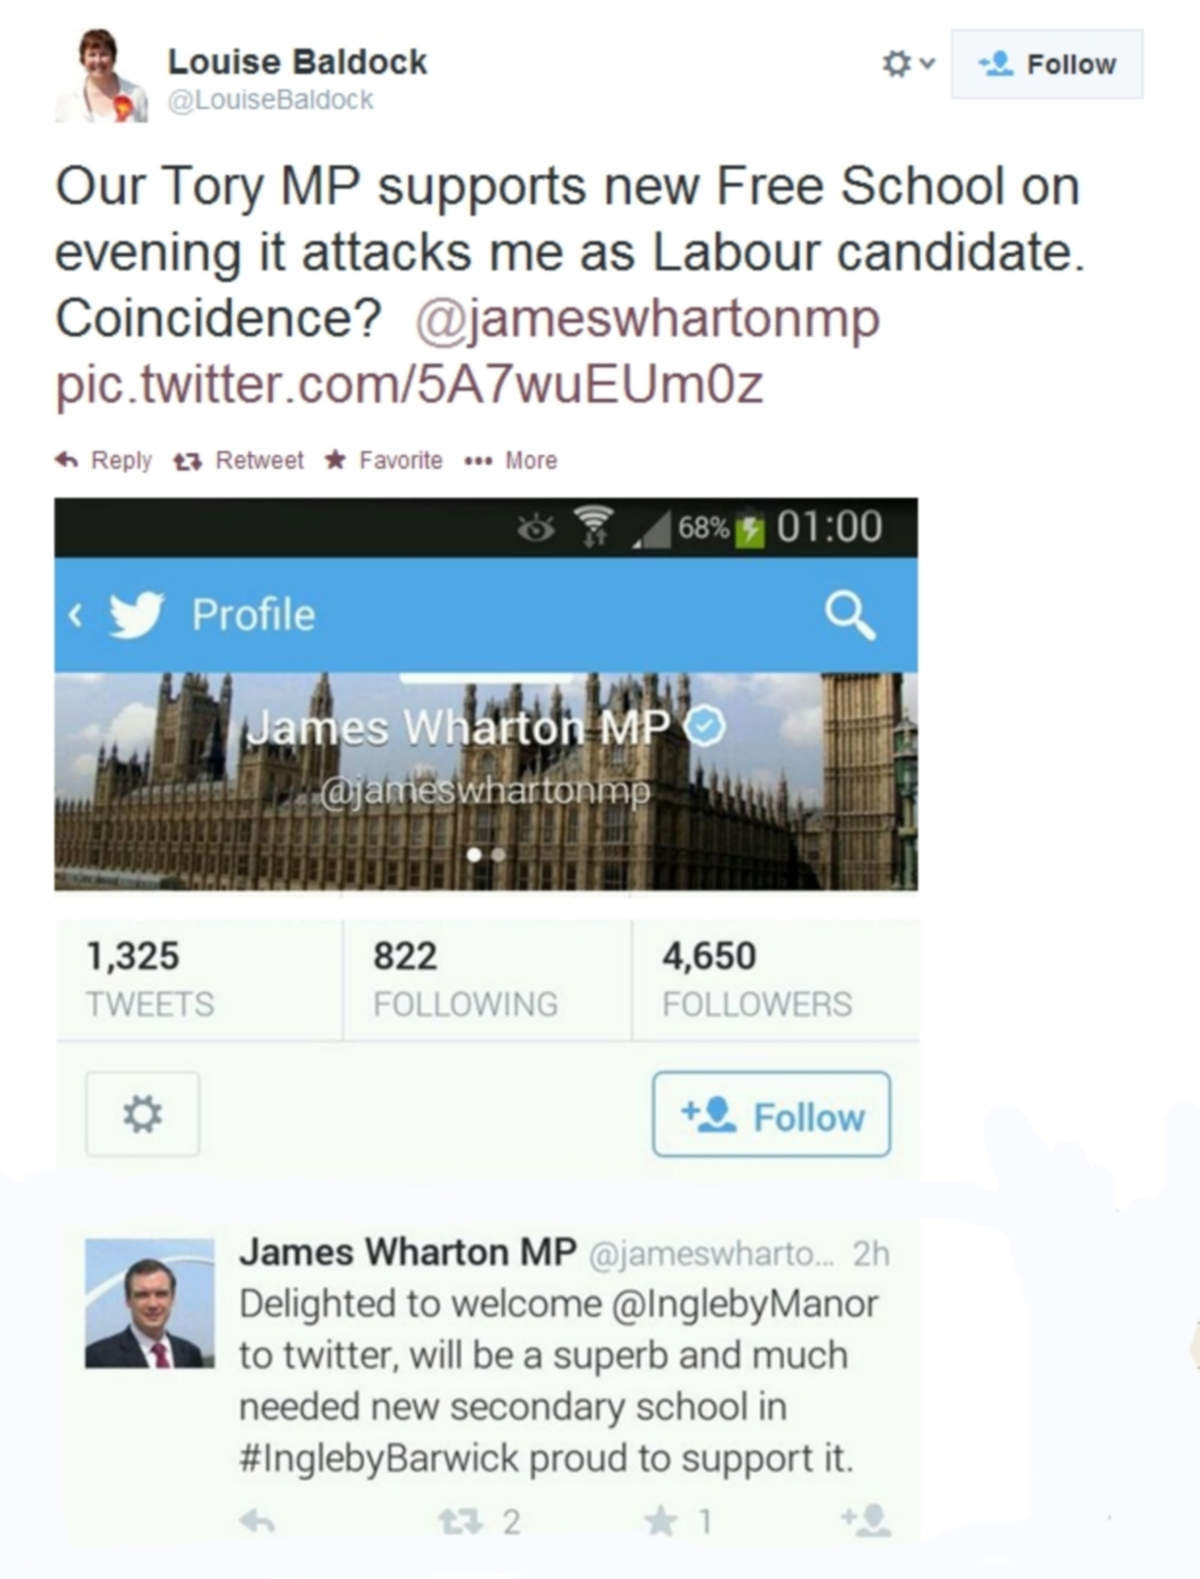 TWITTER ROW: Accusations fly between Stockton South MP James Wharton and Labour candidate Louise Baldock.